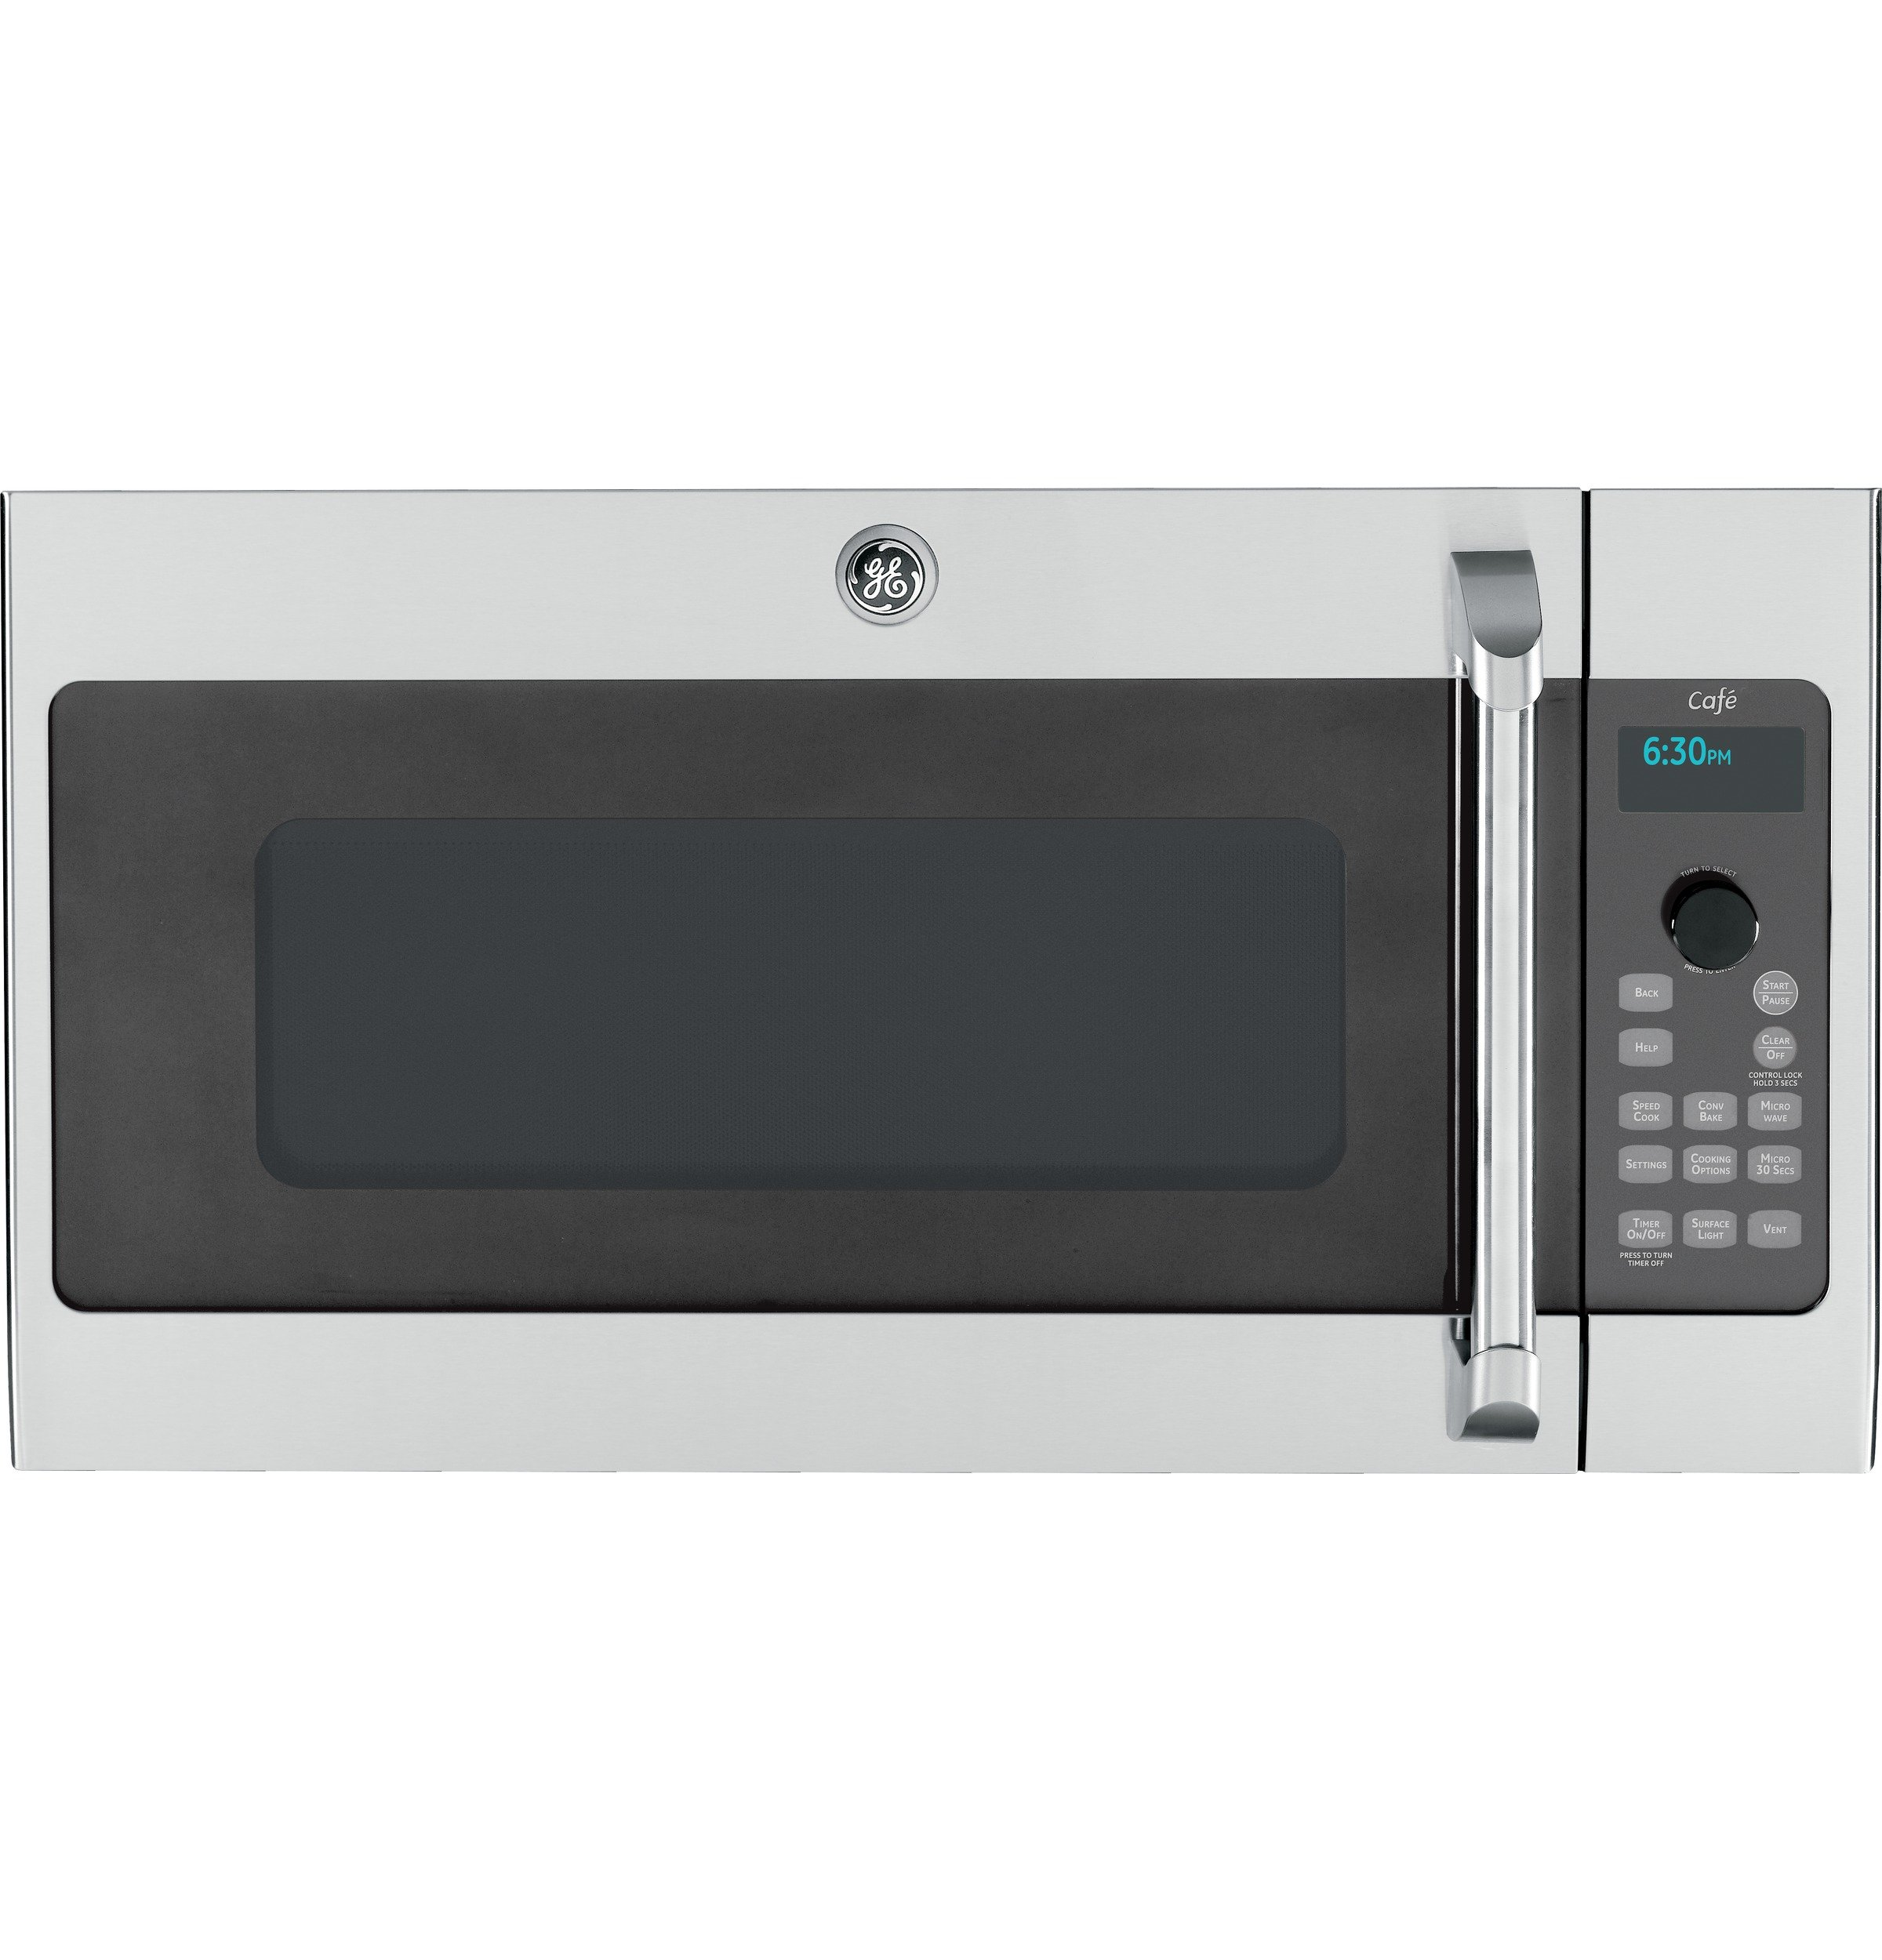 GE Cafe Advantium CSA1201RSS 30'' 1.7 cu. ft. Capacity Over-the-Range Convection Microwave Oven